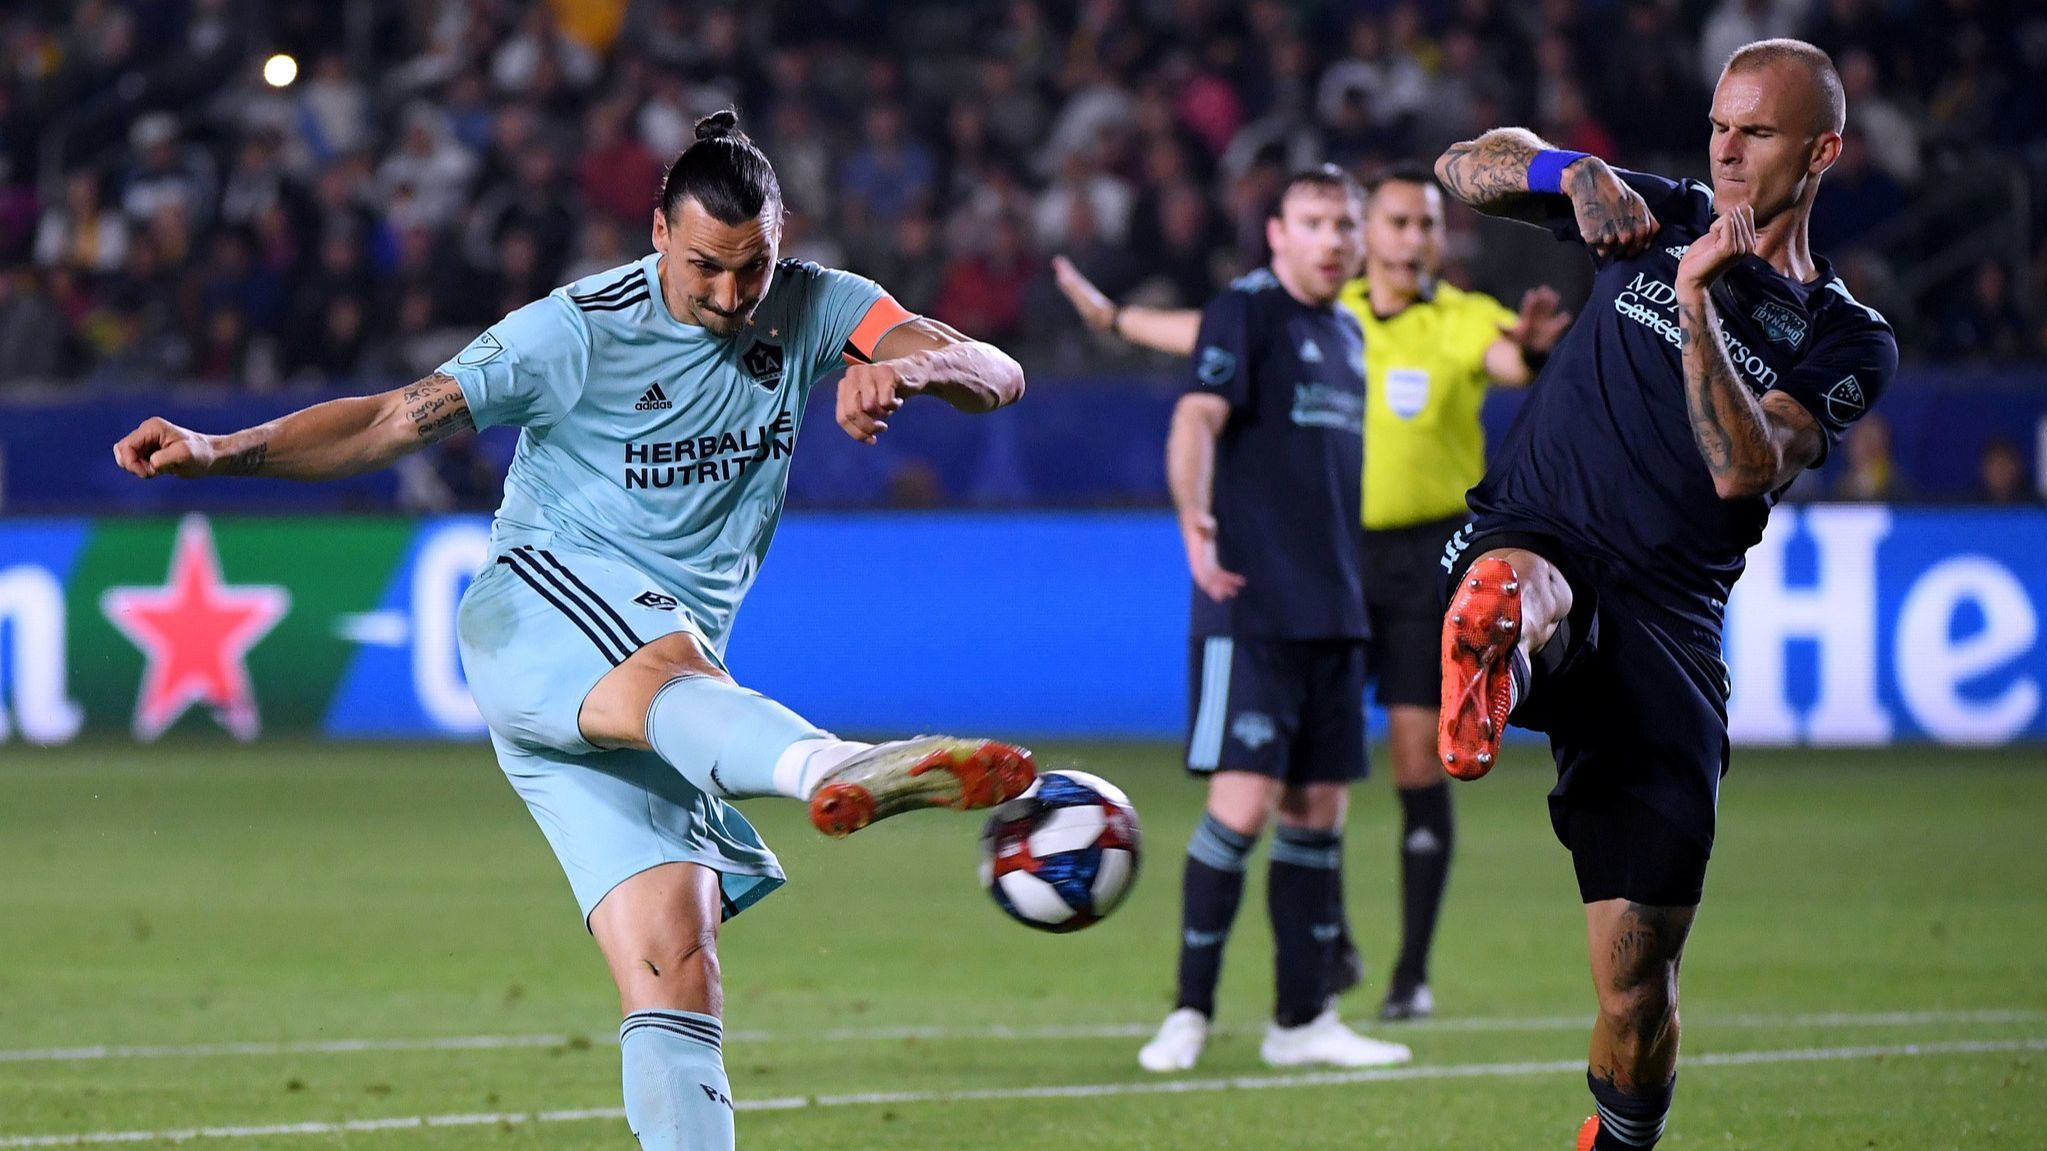 Zlatan Ibrahimovic's goal and a big save by David Bingham is enough for Galaxy in win over Dynamo